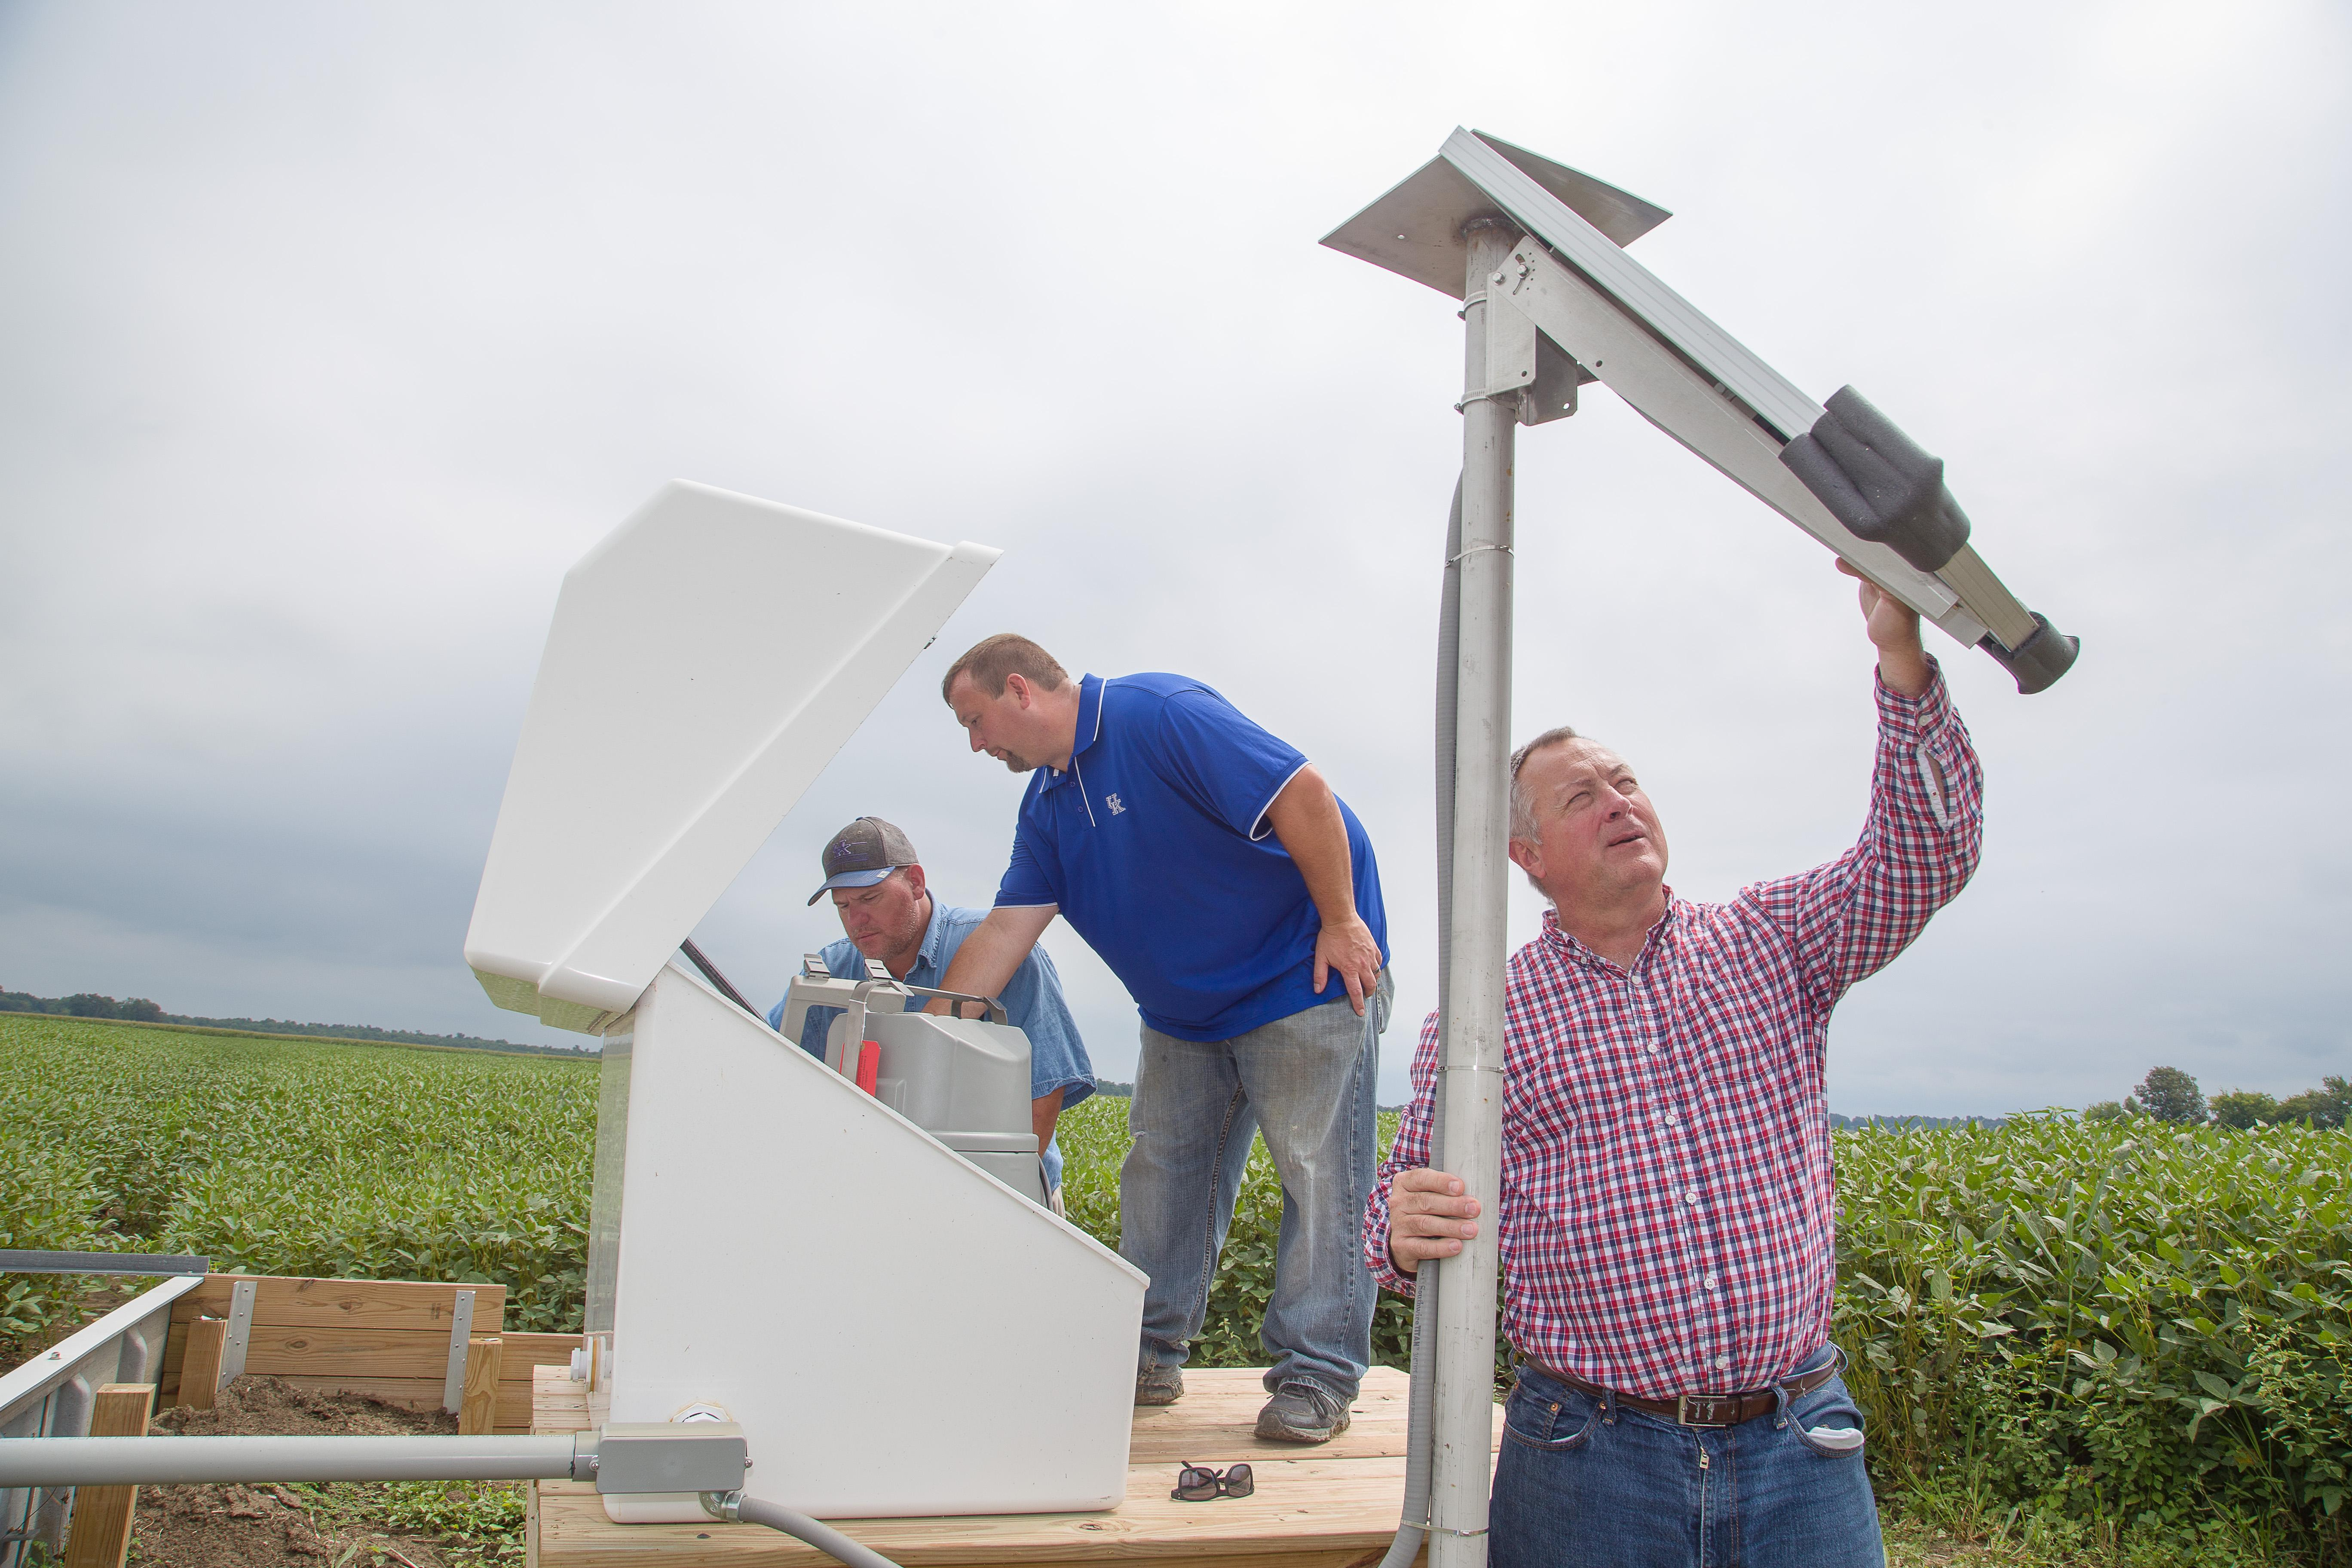 (L to R) Glynn Beck, Mark Akland, and Dwayne Edwards at one of several data collection stations in Daviess County